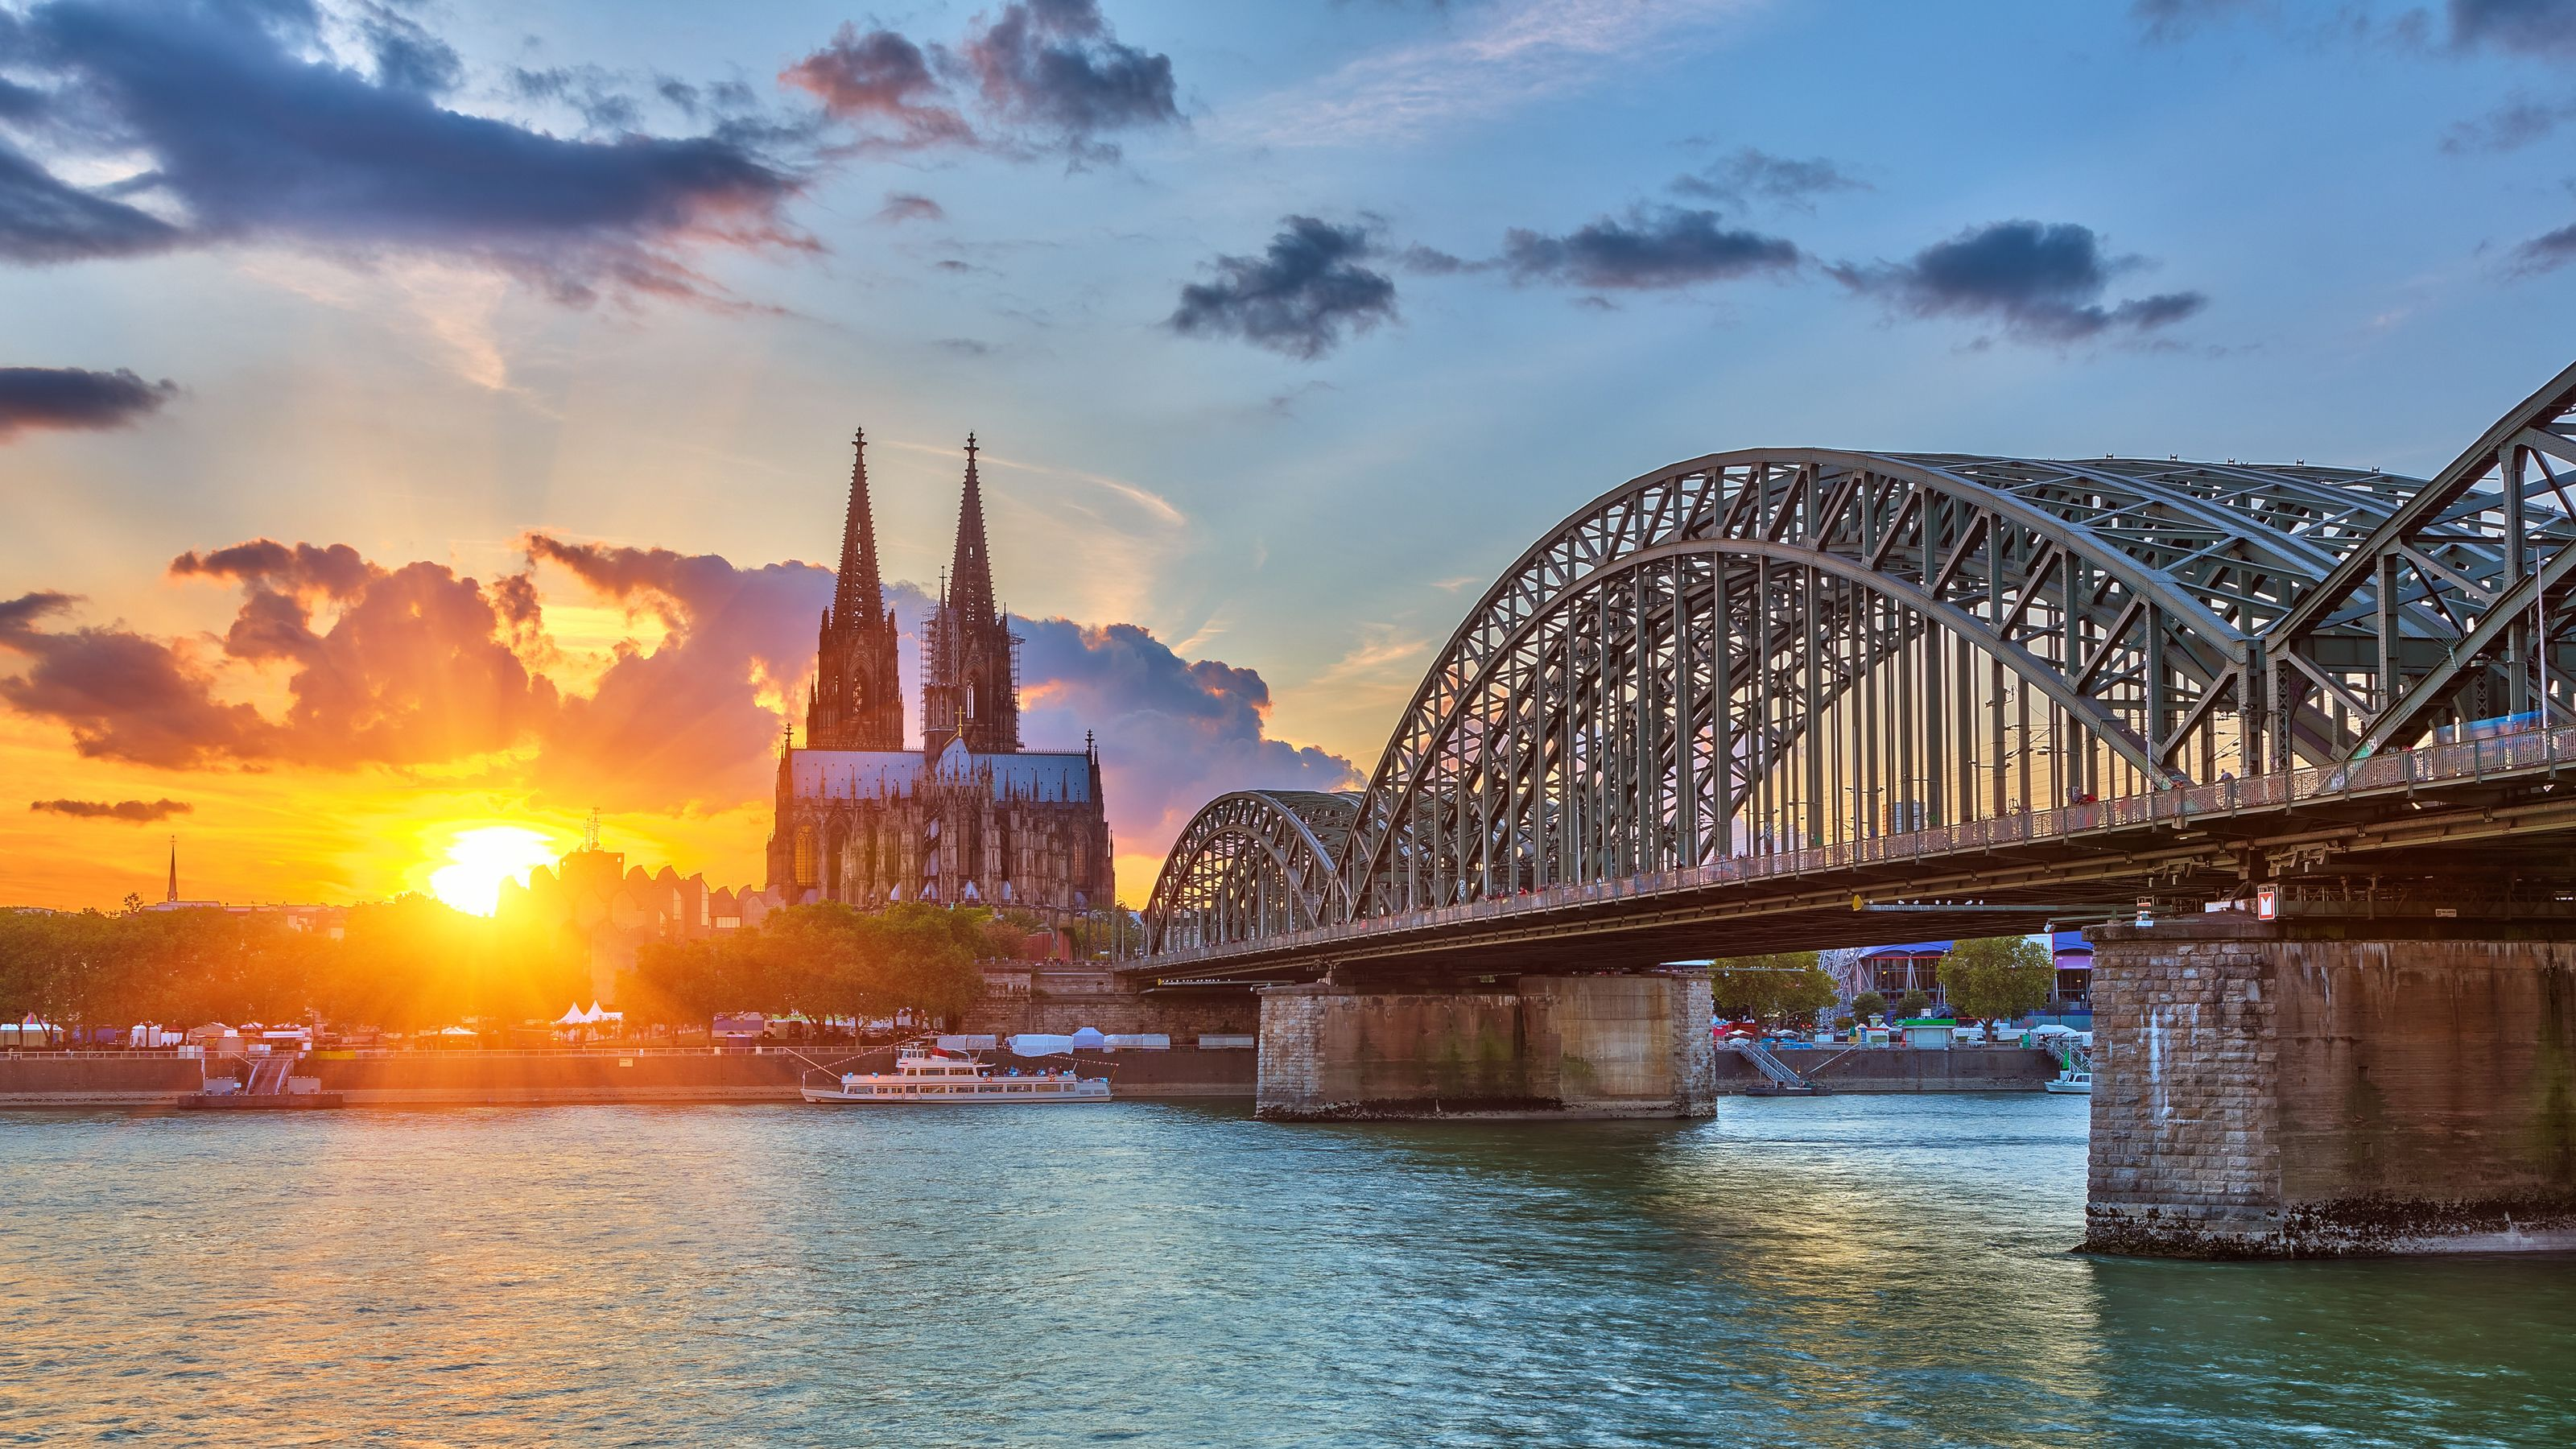 Sun setting at an old cathedral in Cologne